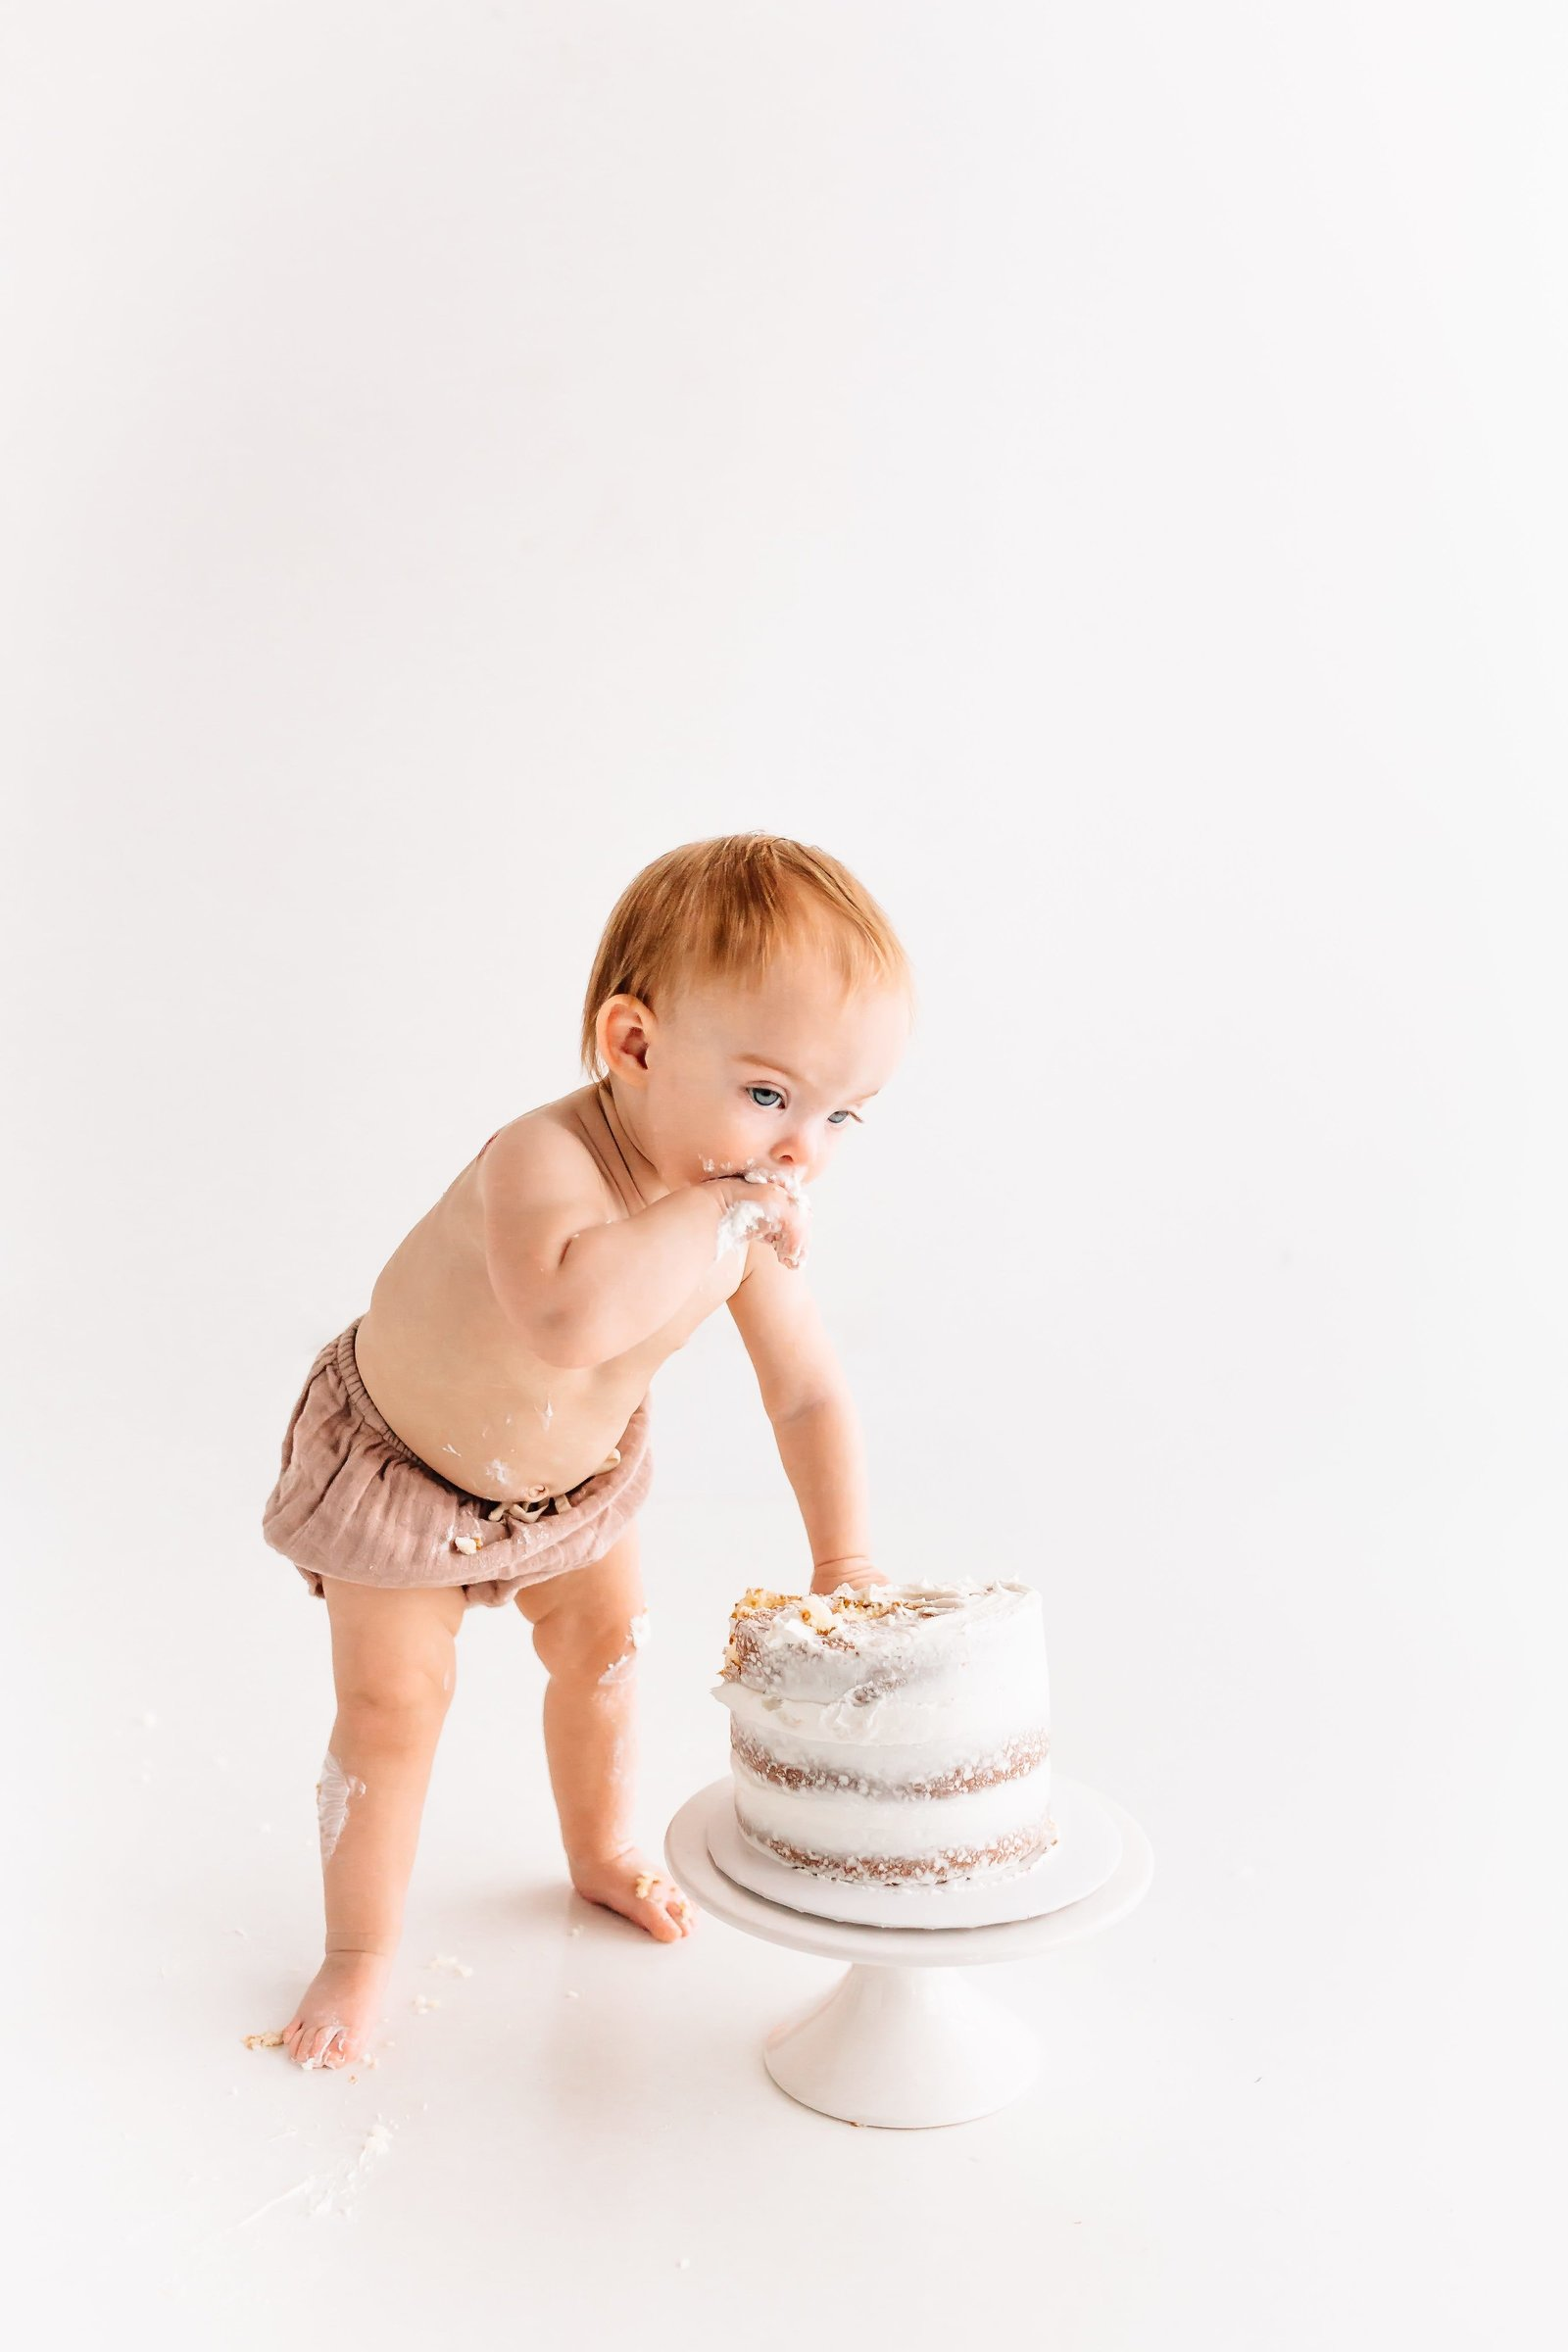 St_Louis_Baby_Photographer_Kelly_Laramore_Photography_108